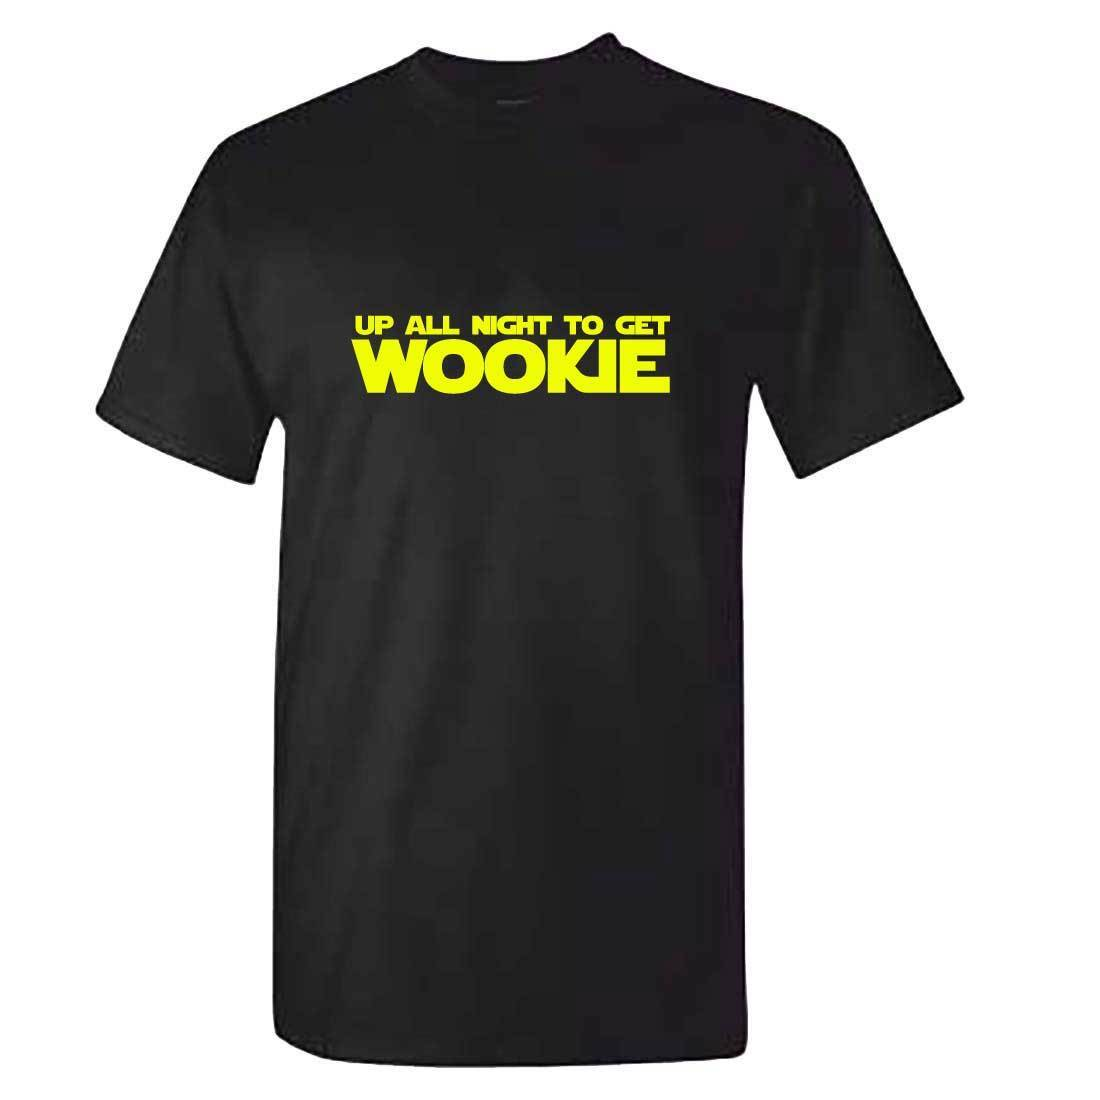 Up All Night To Get Wookie TShirt - Mens Boys Star Wars <font><b>Daft</b></font> <font><b>Punk</b></font> Ideal Gift Cool Casual pride <font><b>t</b></font> <font><b>shirt</b></font> men Unisex Fashion image